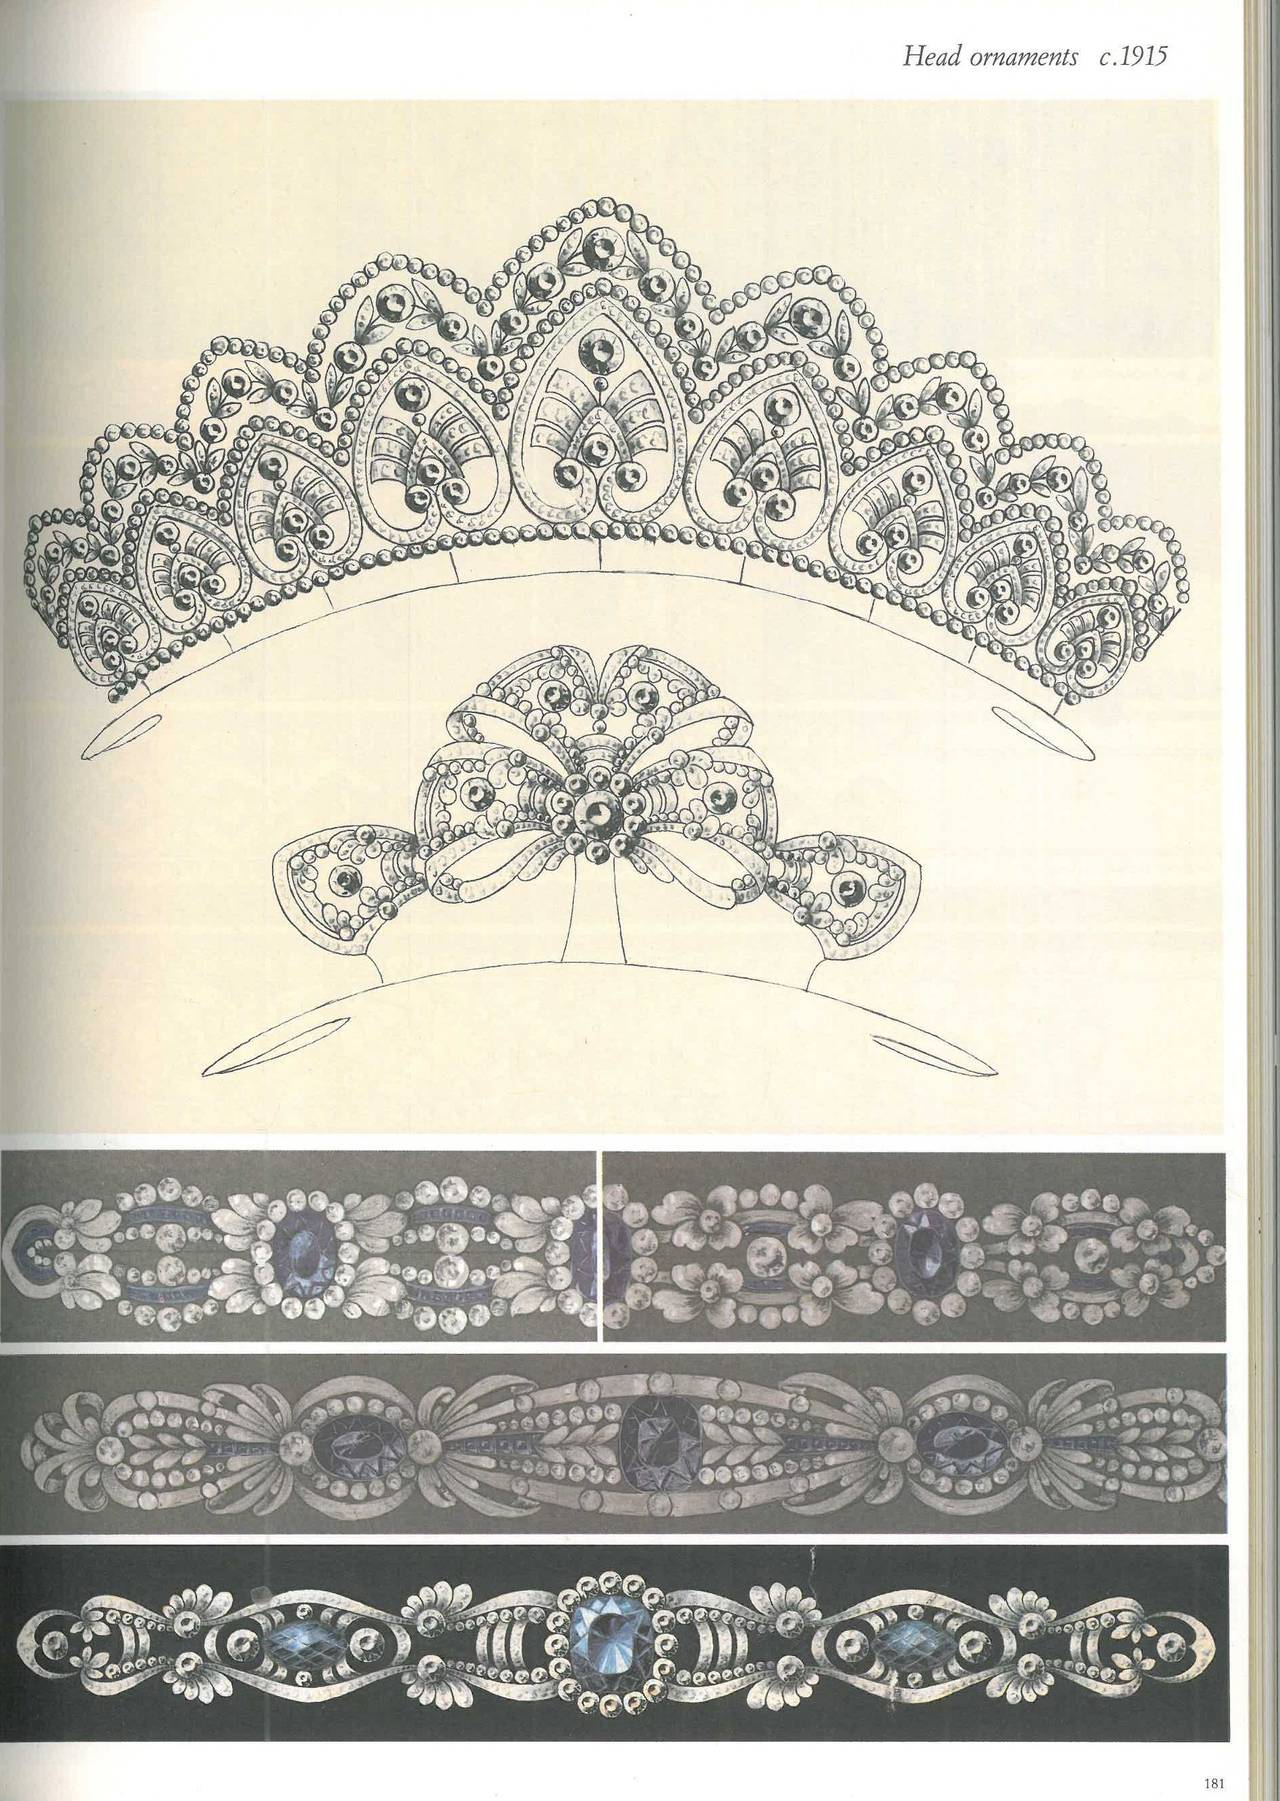 Book of Kochert - Imperial Jewellers in Vienna - Jewellery Designs 1810-1940 For Sale 1